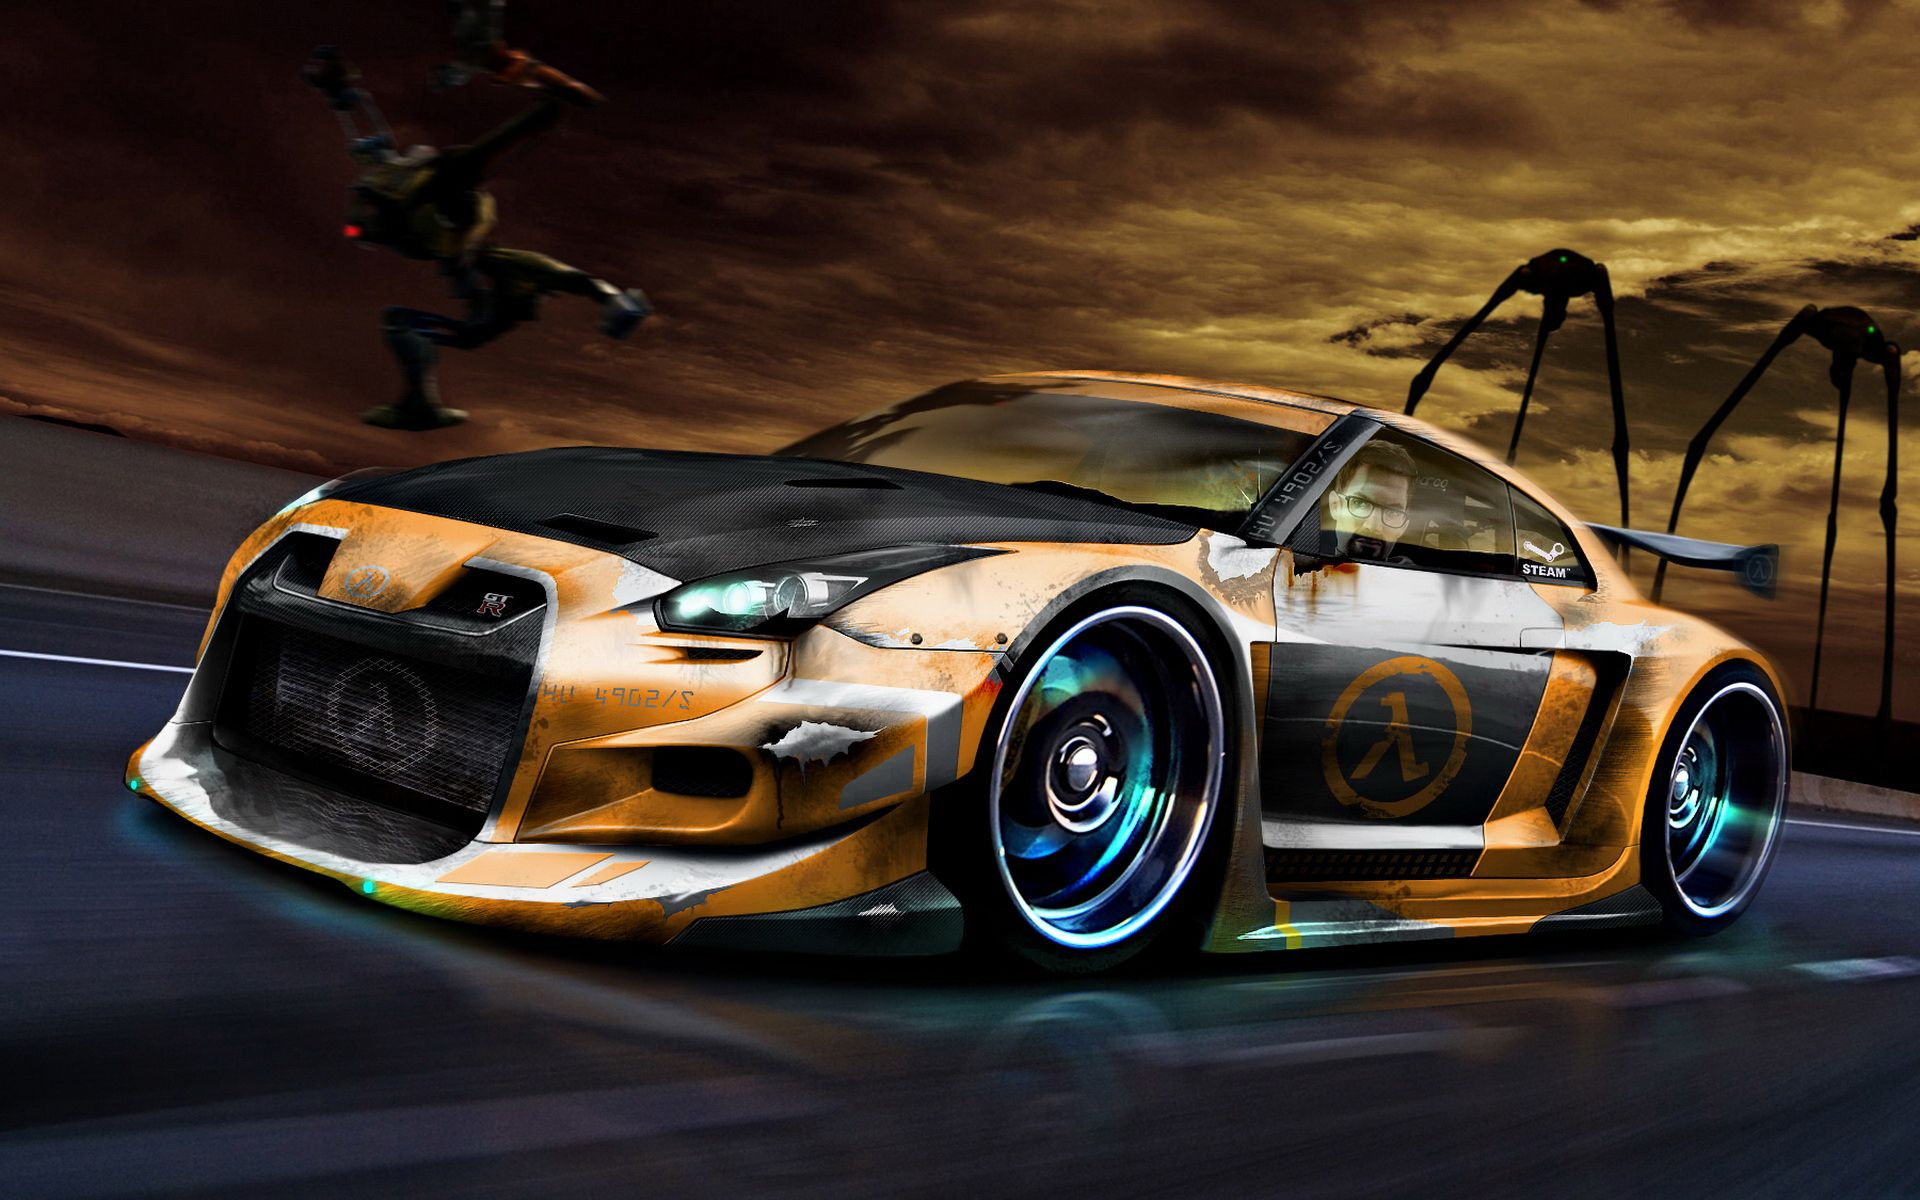 Street Racing Car Pics Cool Sports Car Wallpaper Auto Desktop